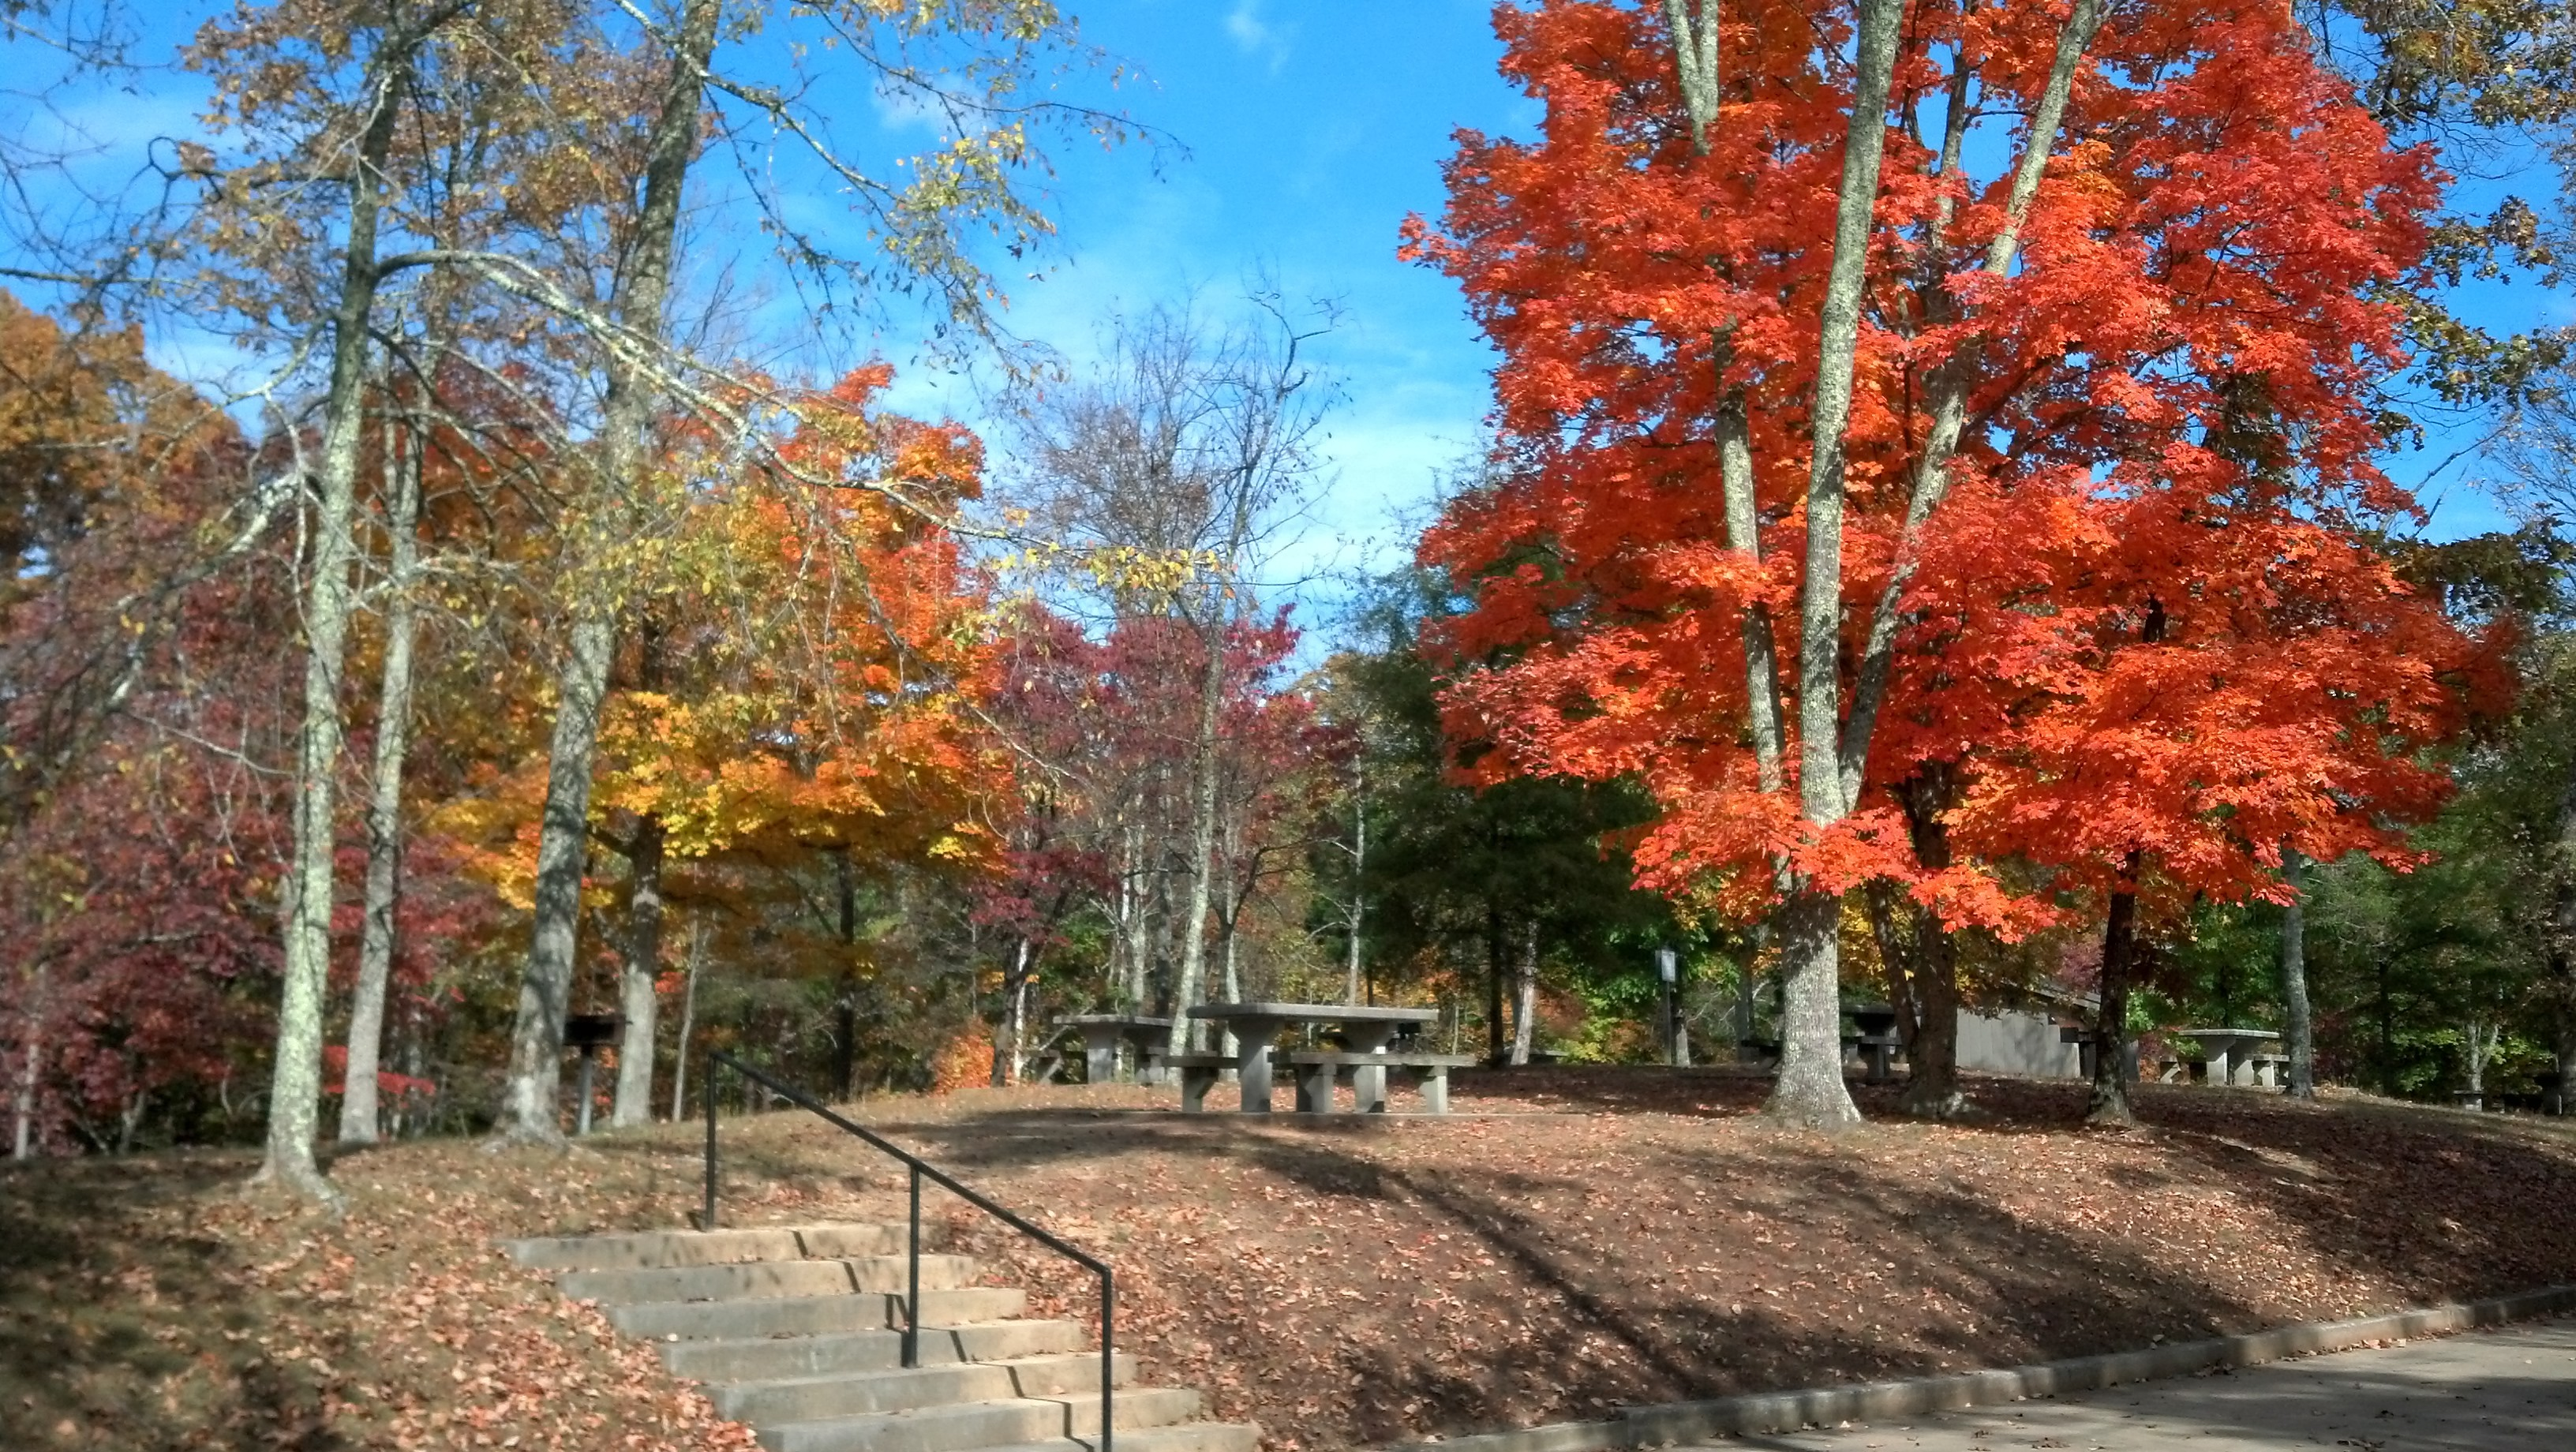 Fall colors at Panther Creek state park.